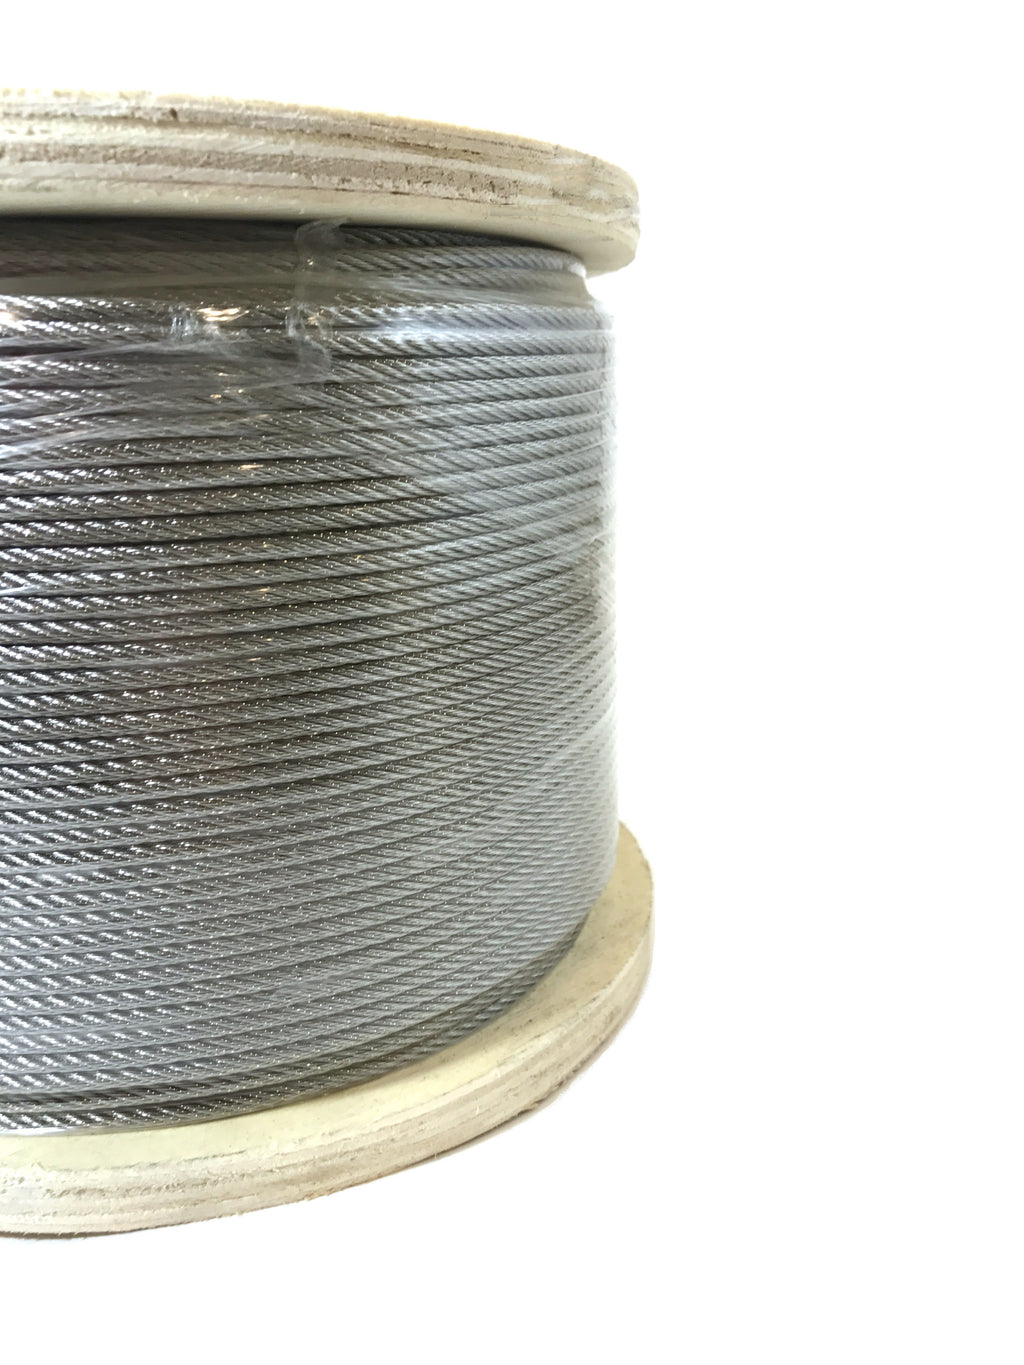 "7x7 Stainless Steel Cable 1/8"" - 1000ft reel"